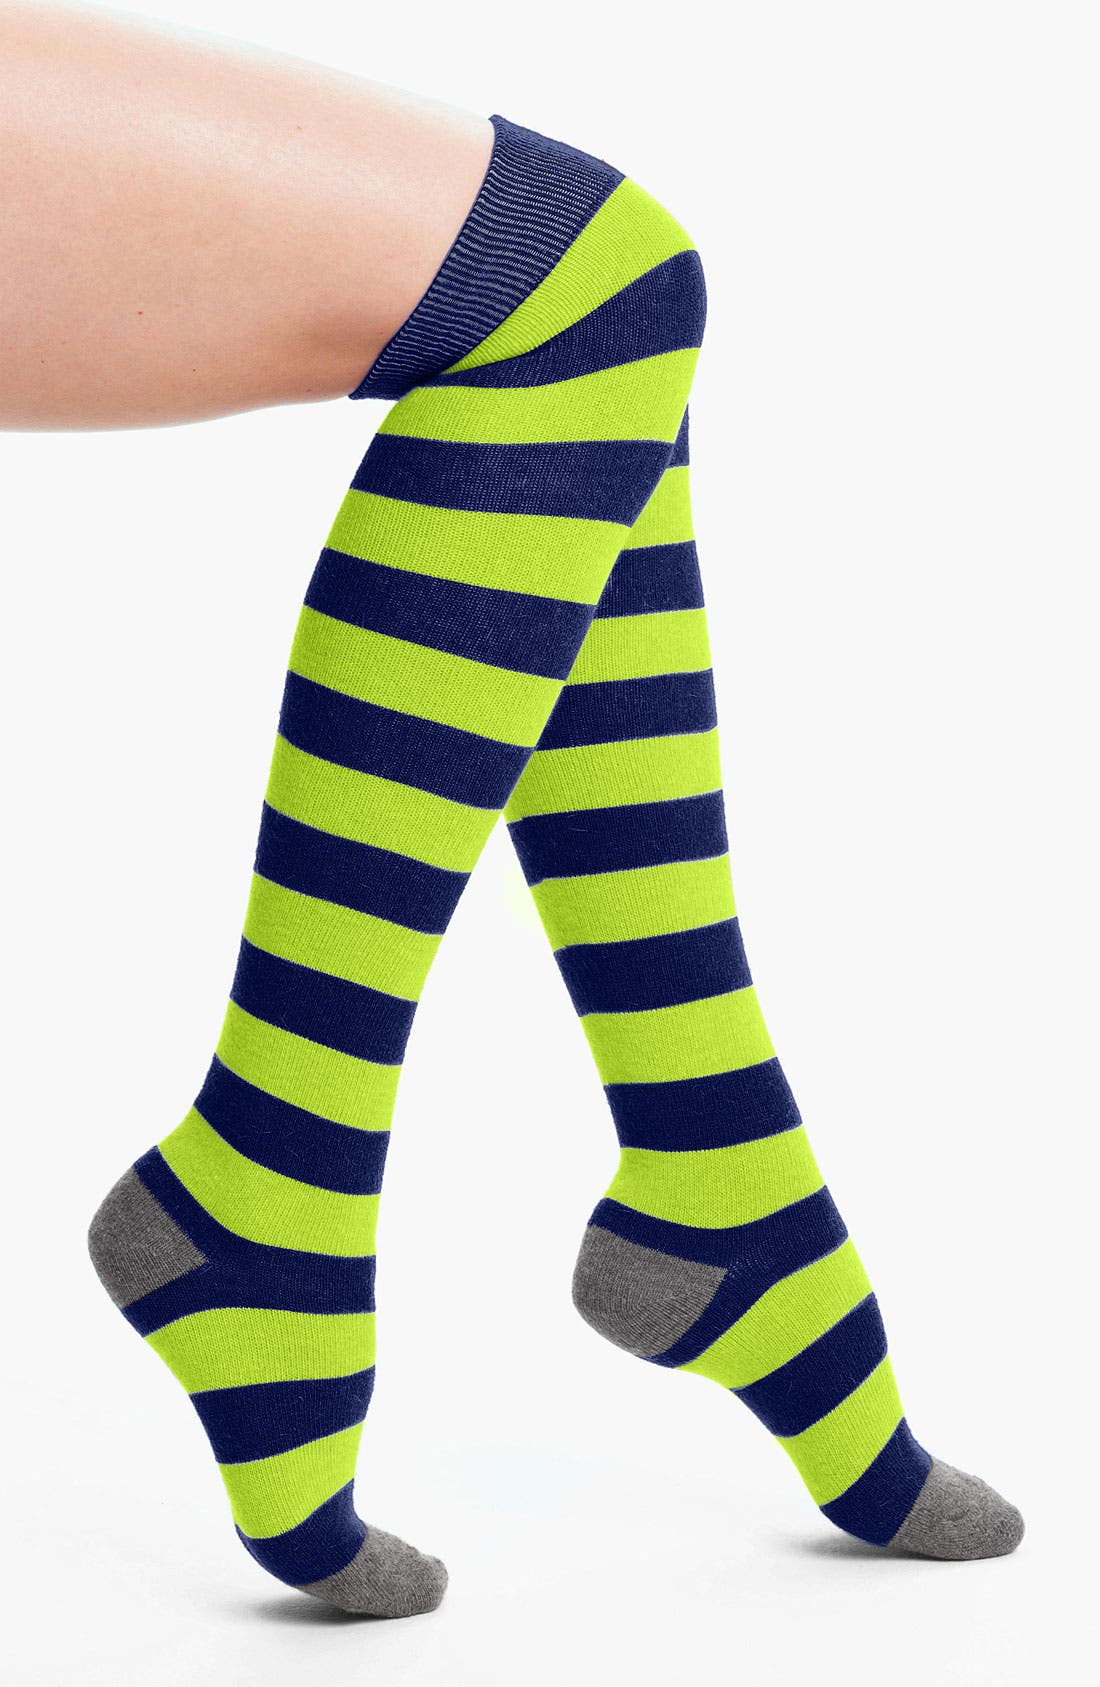 Main Image - Make + Model 'Candy Stripe' Over the Knee Socks